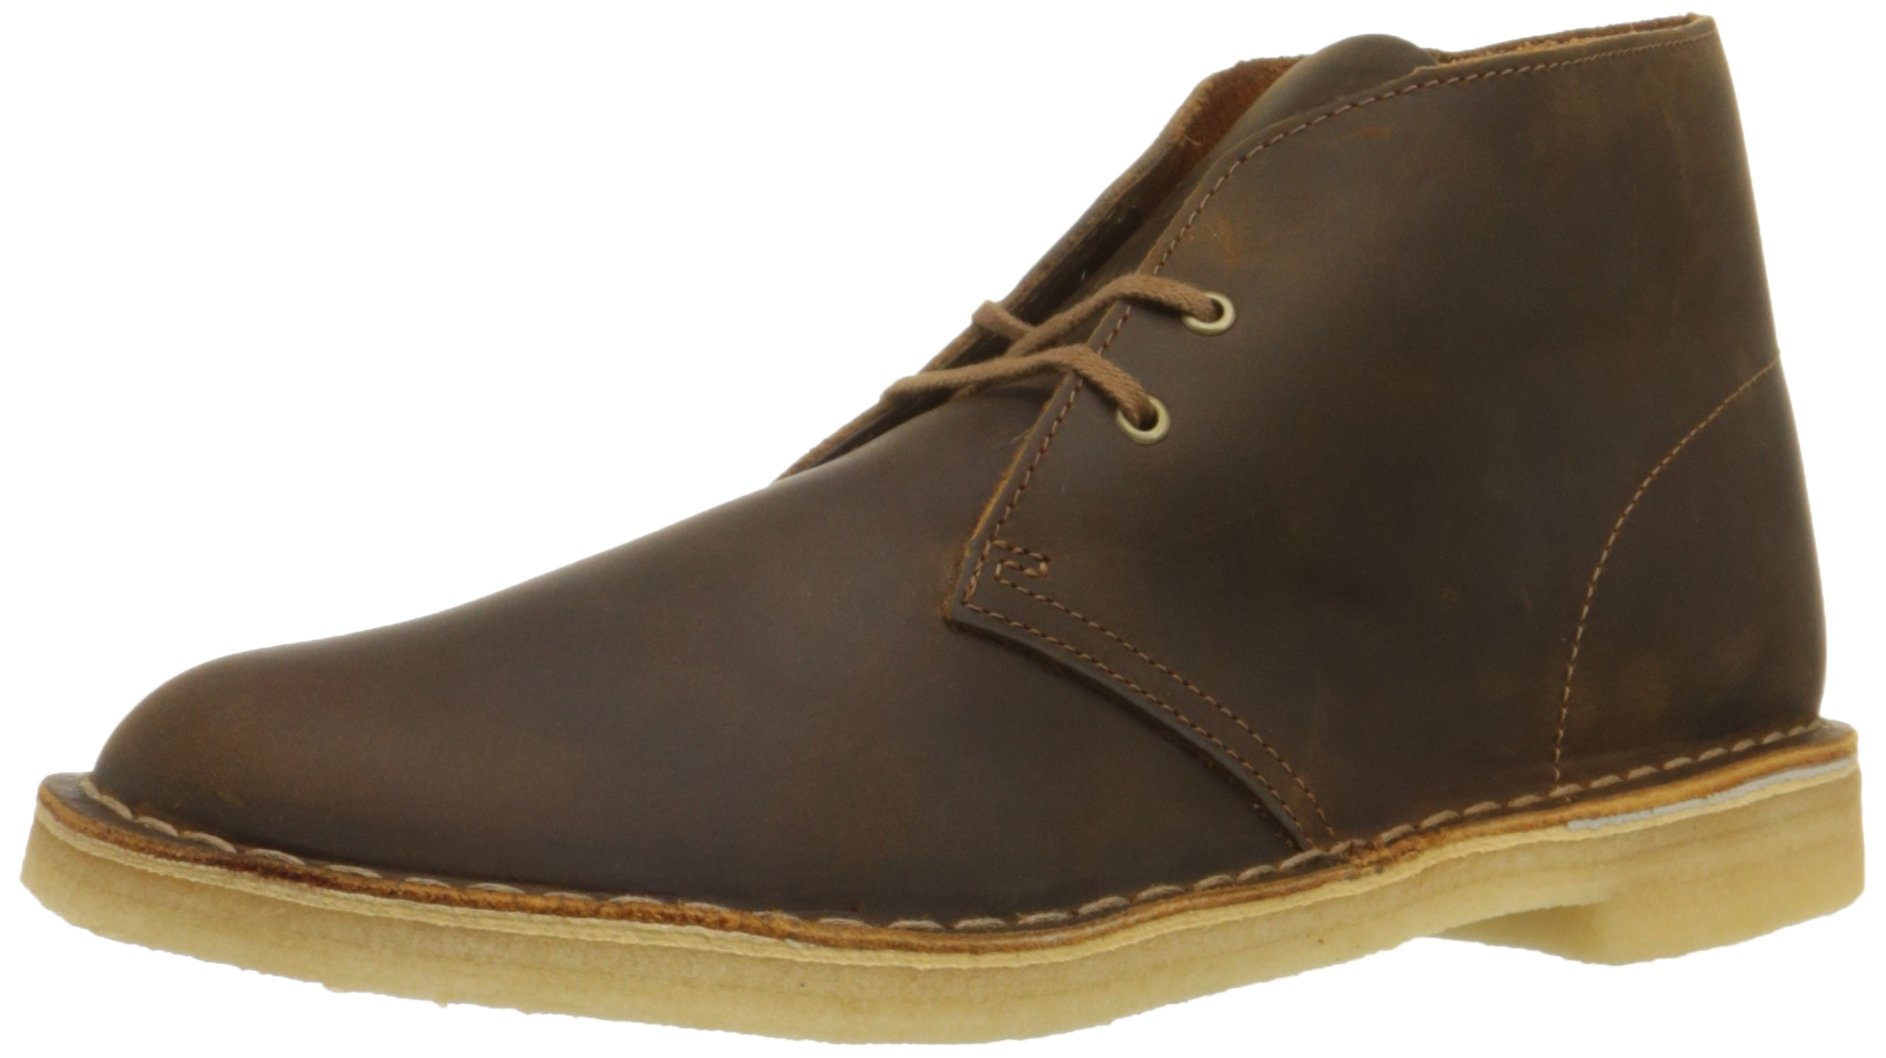 CLARKS Originals Men's Desert Boot,Beeswax,10 M US by CLARKS